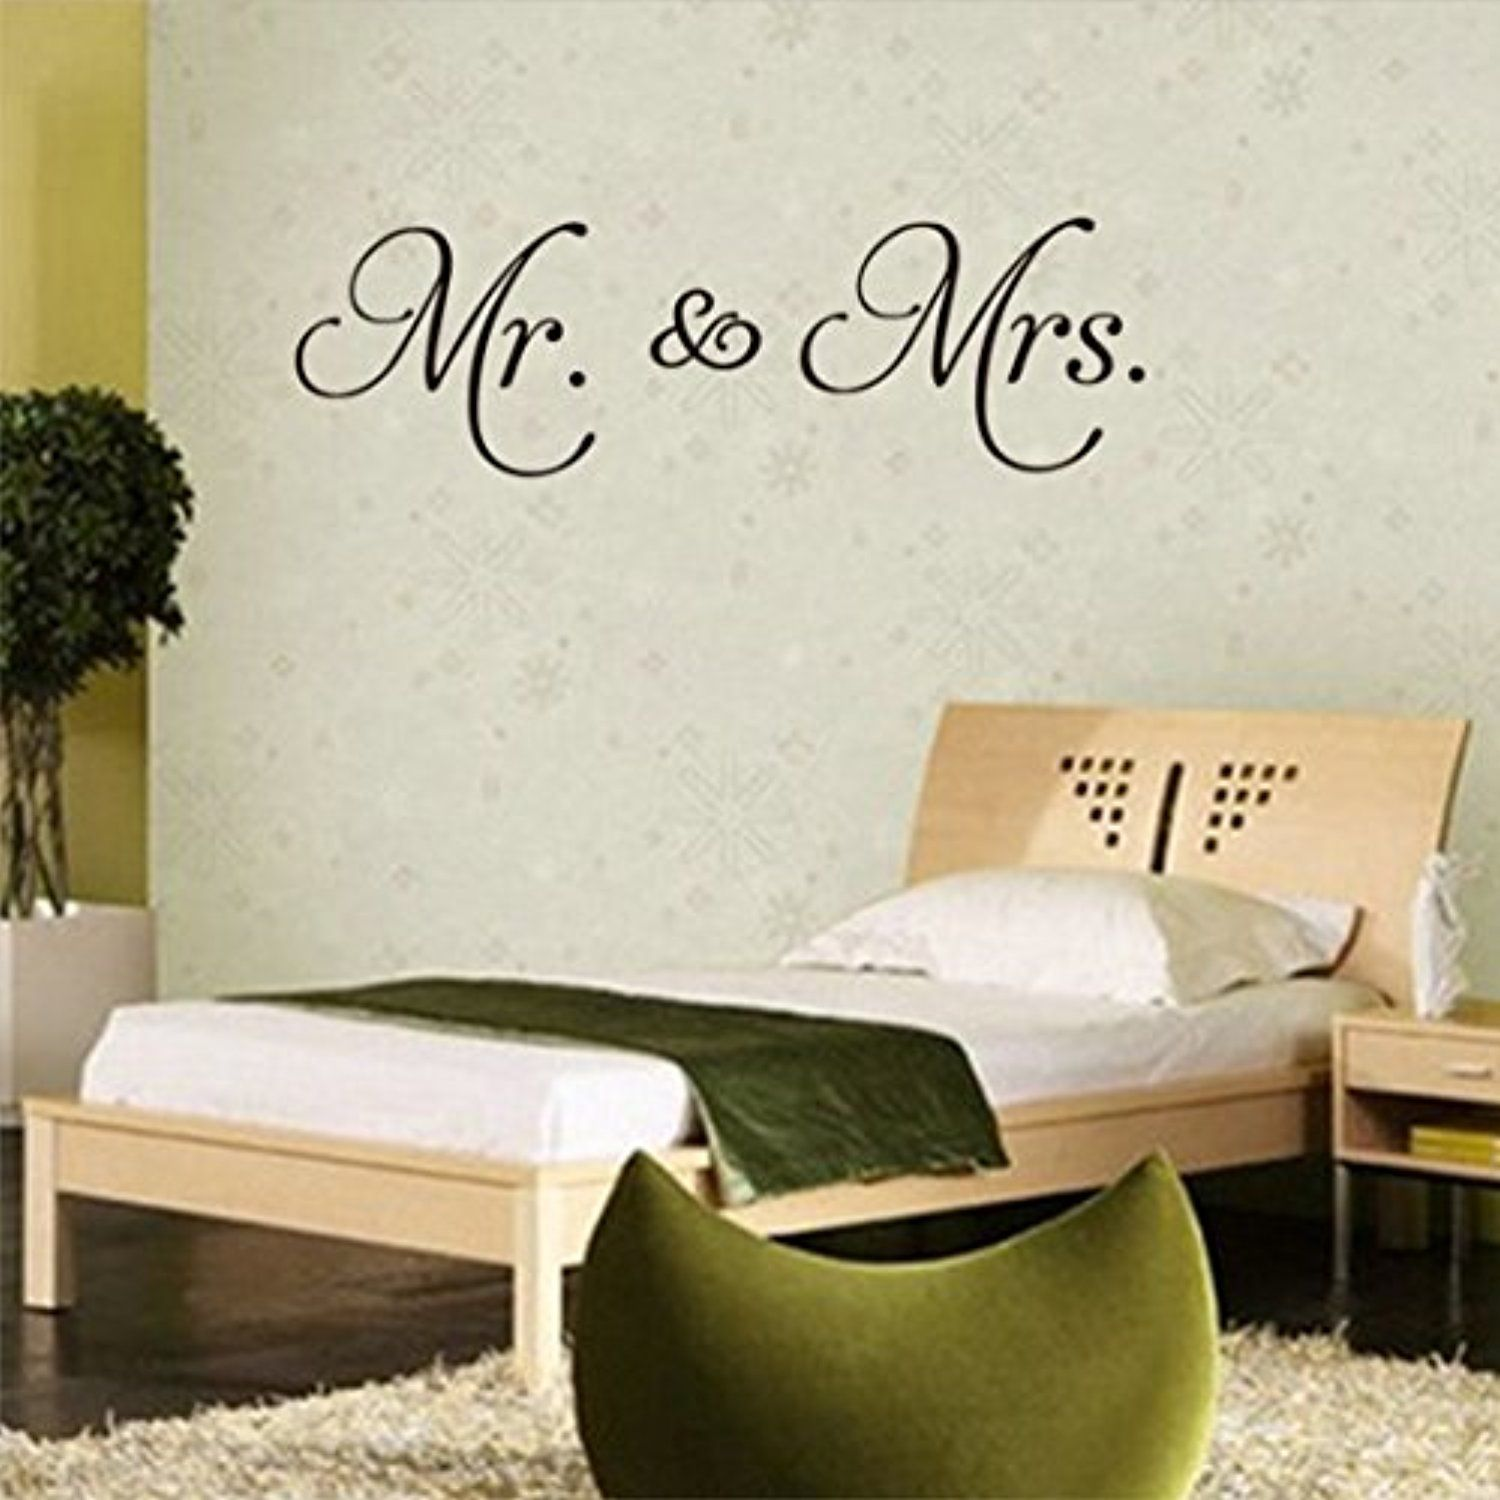 Mr Mrs Love English Proverbs Bedroom Living Room Decorative Pvc